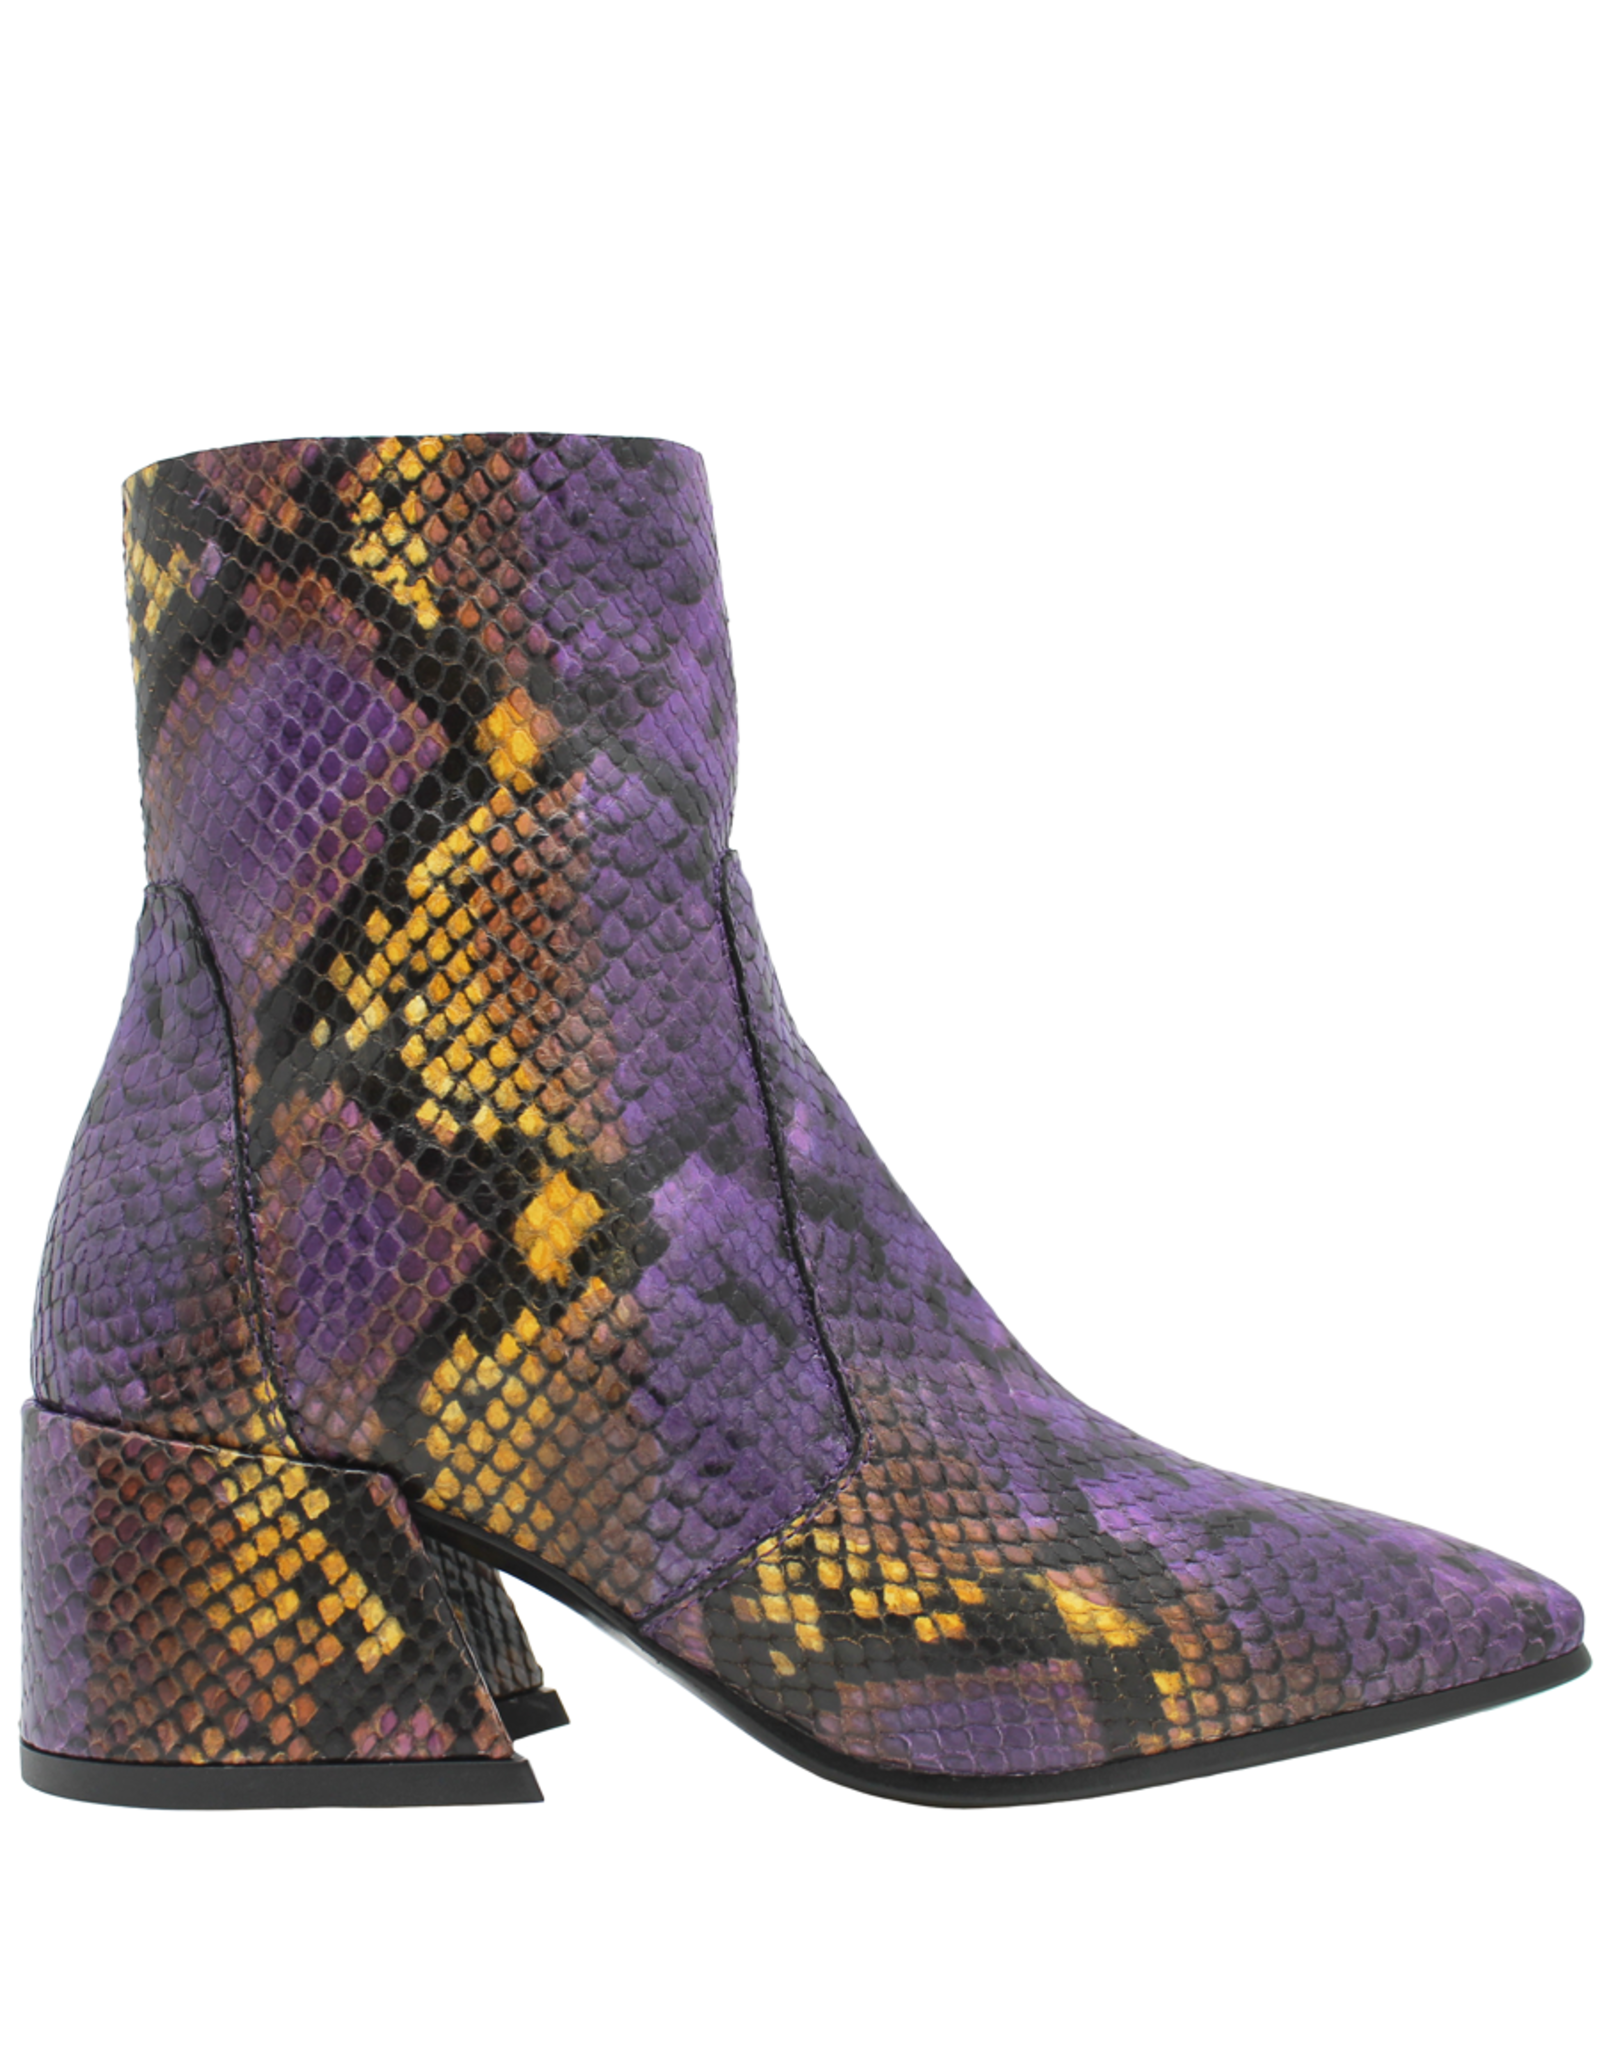 Elena Iachi ElenaIachi Purple Snake Mid-Calf Square Toe Boot 1945